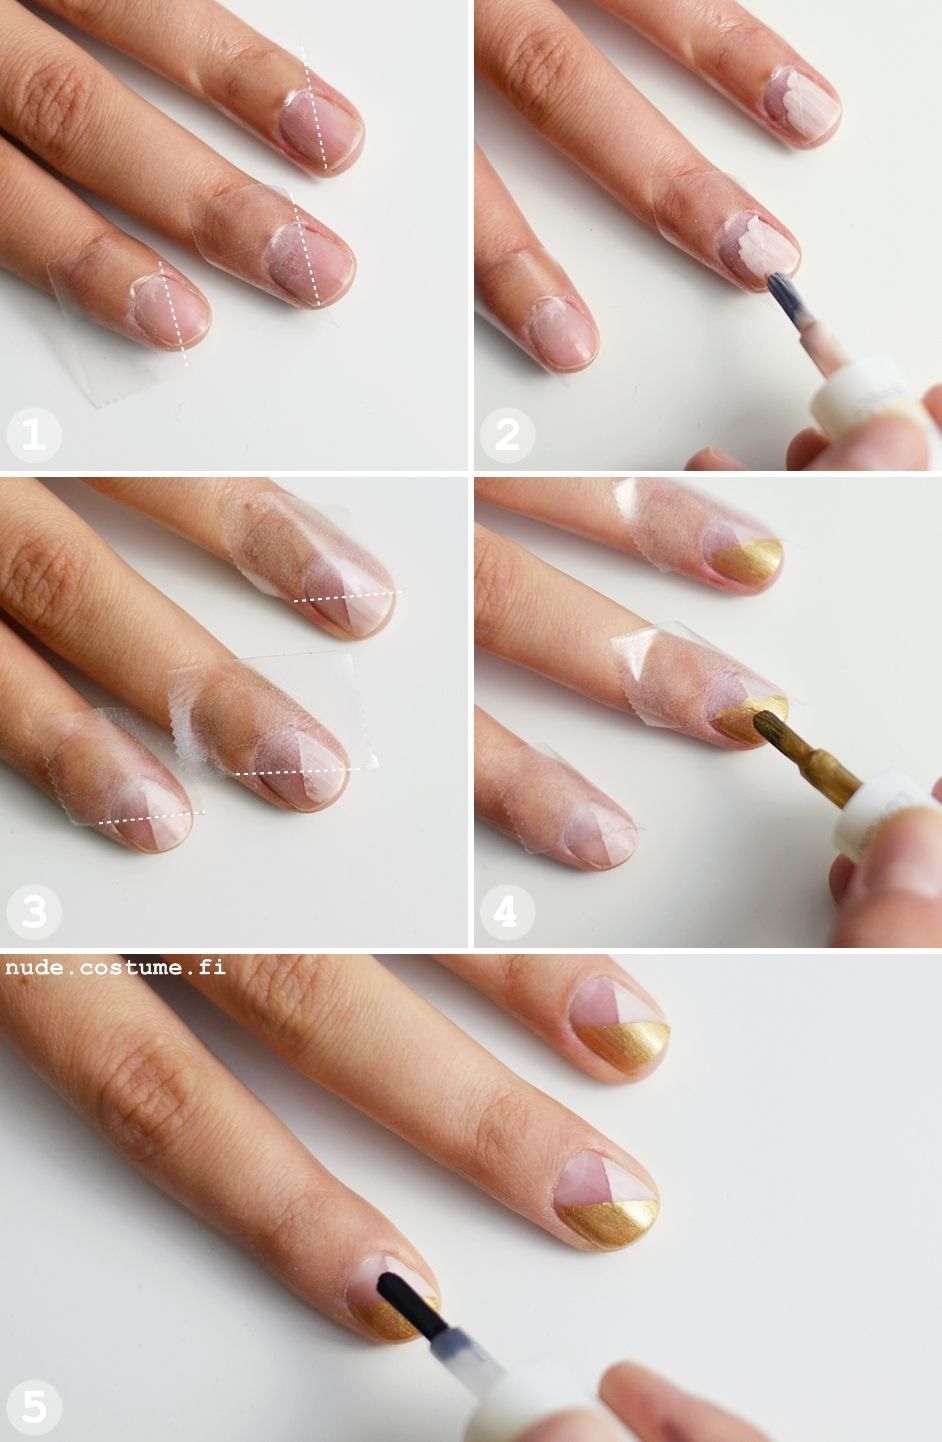 Tutorial: Graphic Golden Nails nude.costume.fi